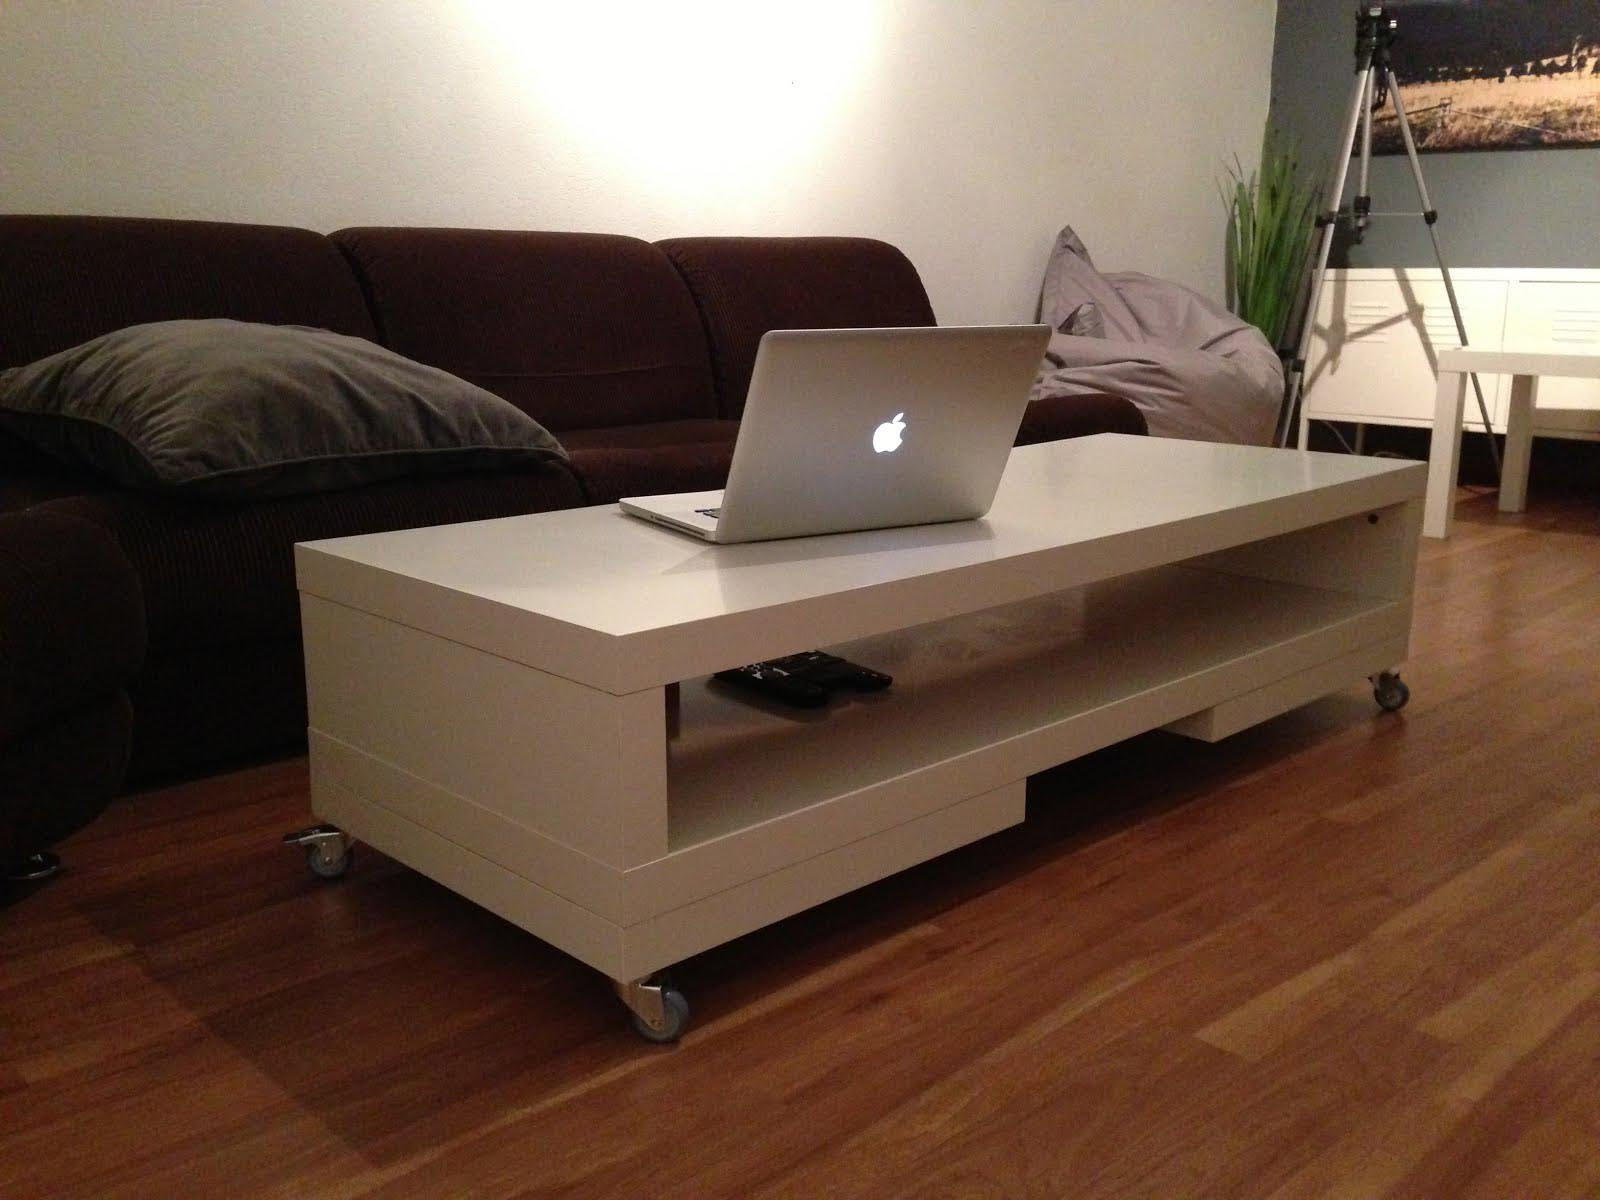 Coffee Table With Wheels IKEA Coffee Table Design Ideas